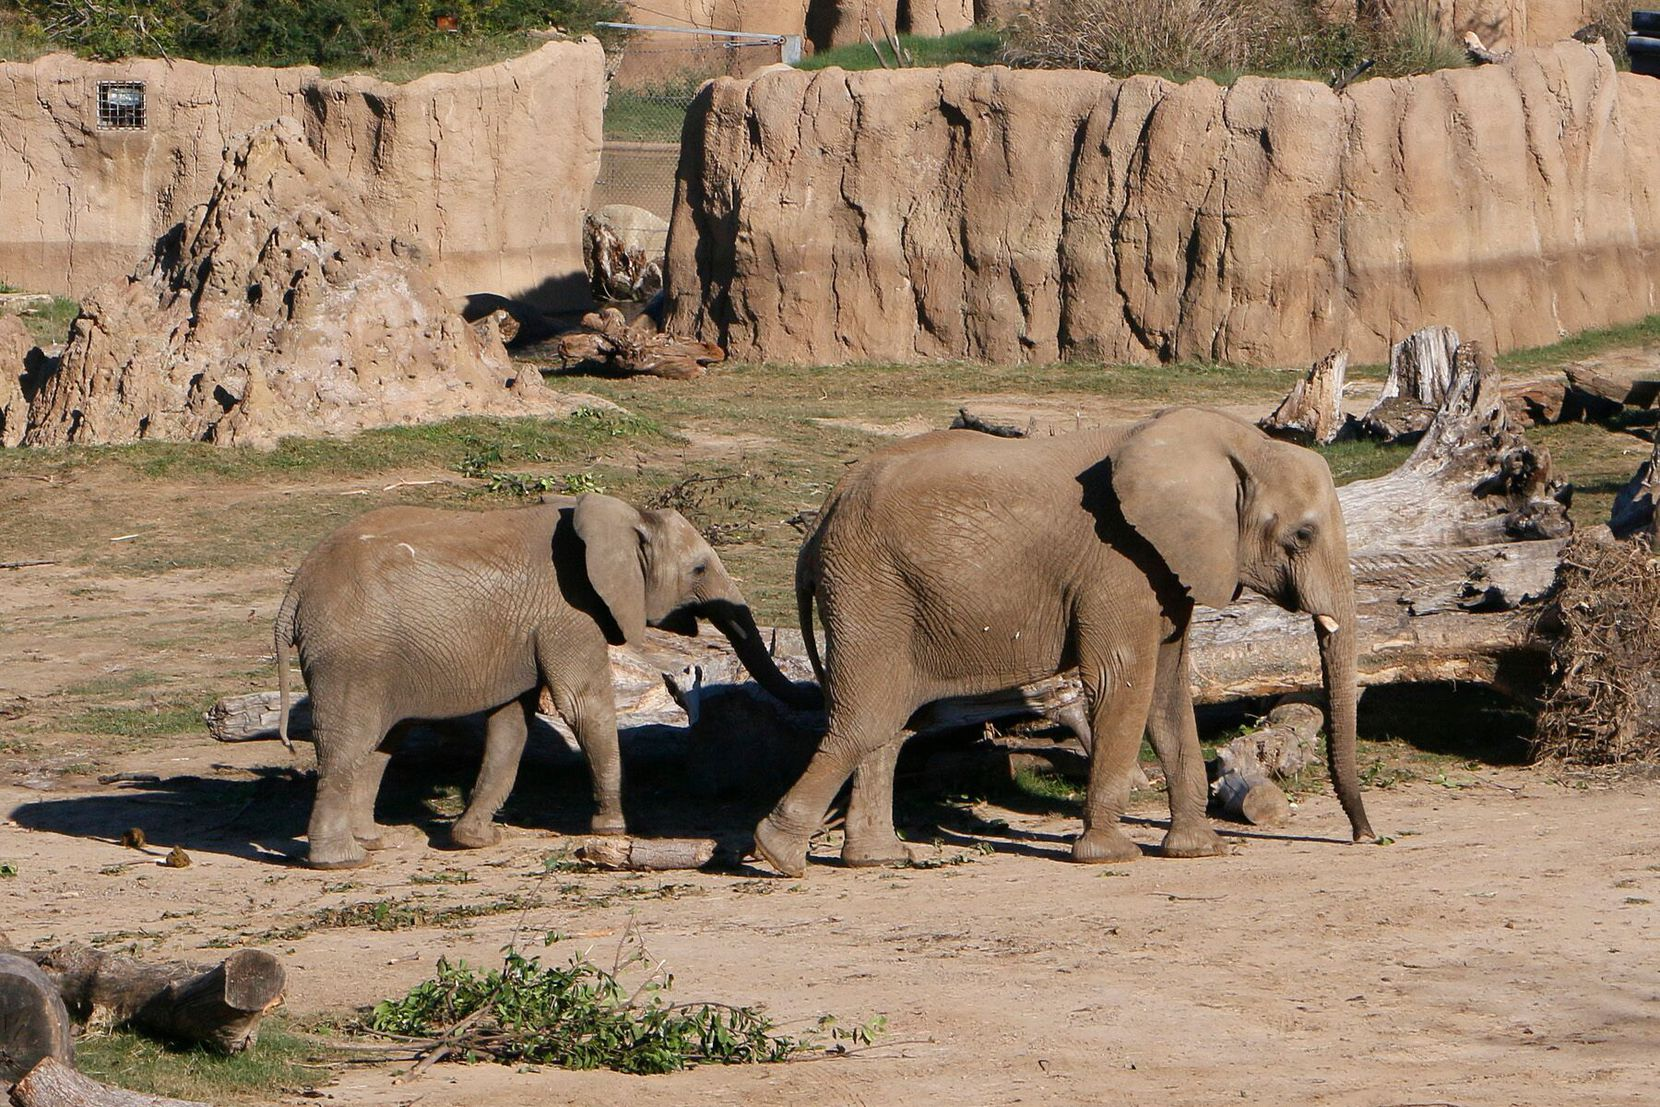 Nowalzi and her daughter Amahle at the Giants of the Savanna habitat at the Dallas Zoo. The two elephants were moved to the Fresno Chaffee Zoo in California.